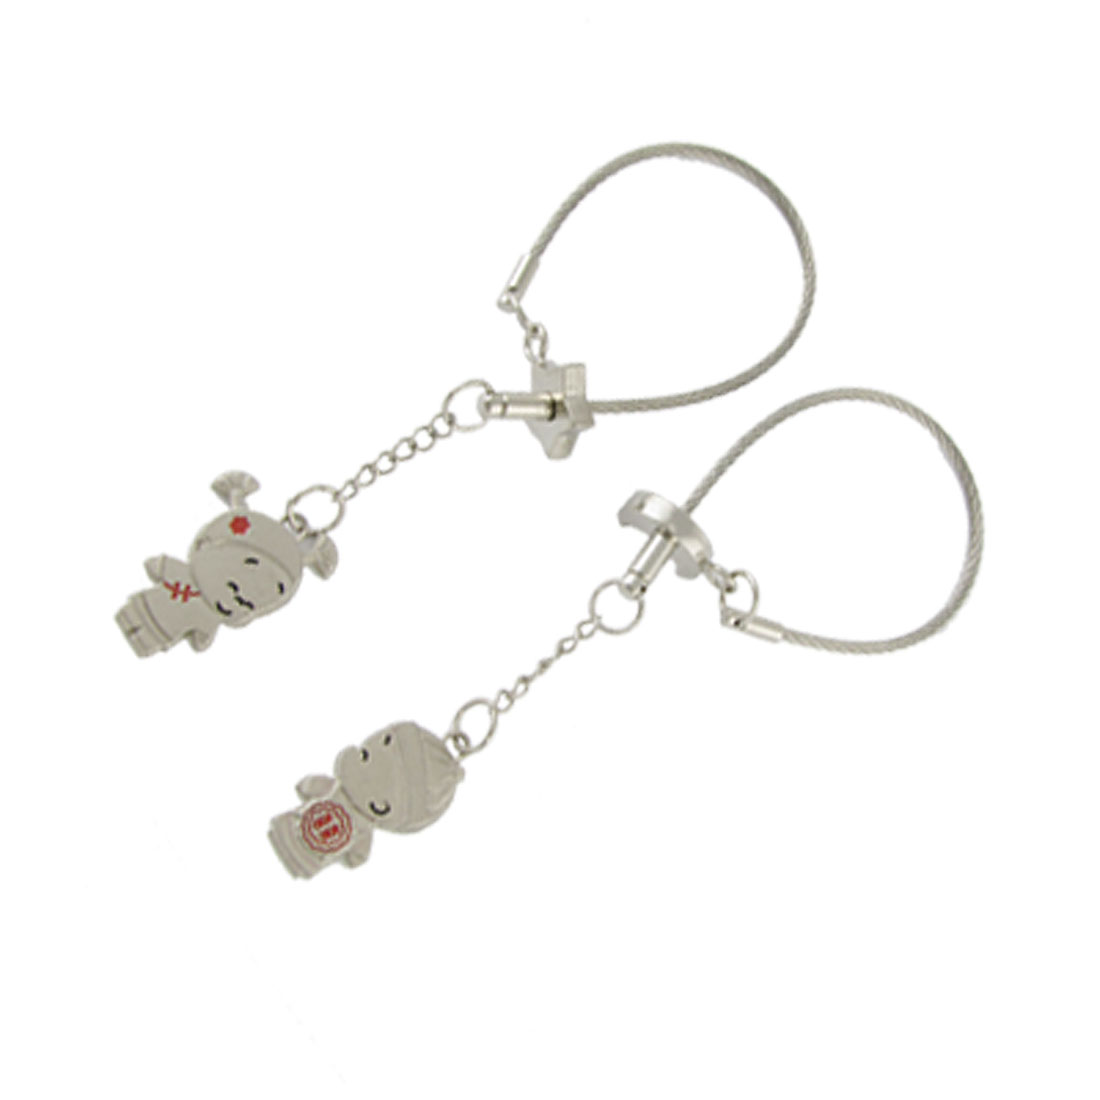 2 Pcs Metal Silver Tone Cartoon Figure Key Chain Ring for Lovers